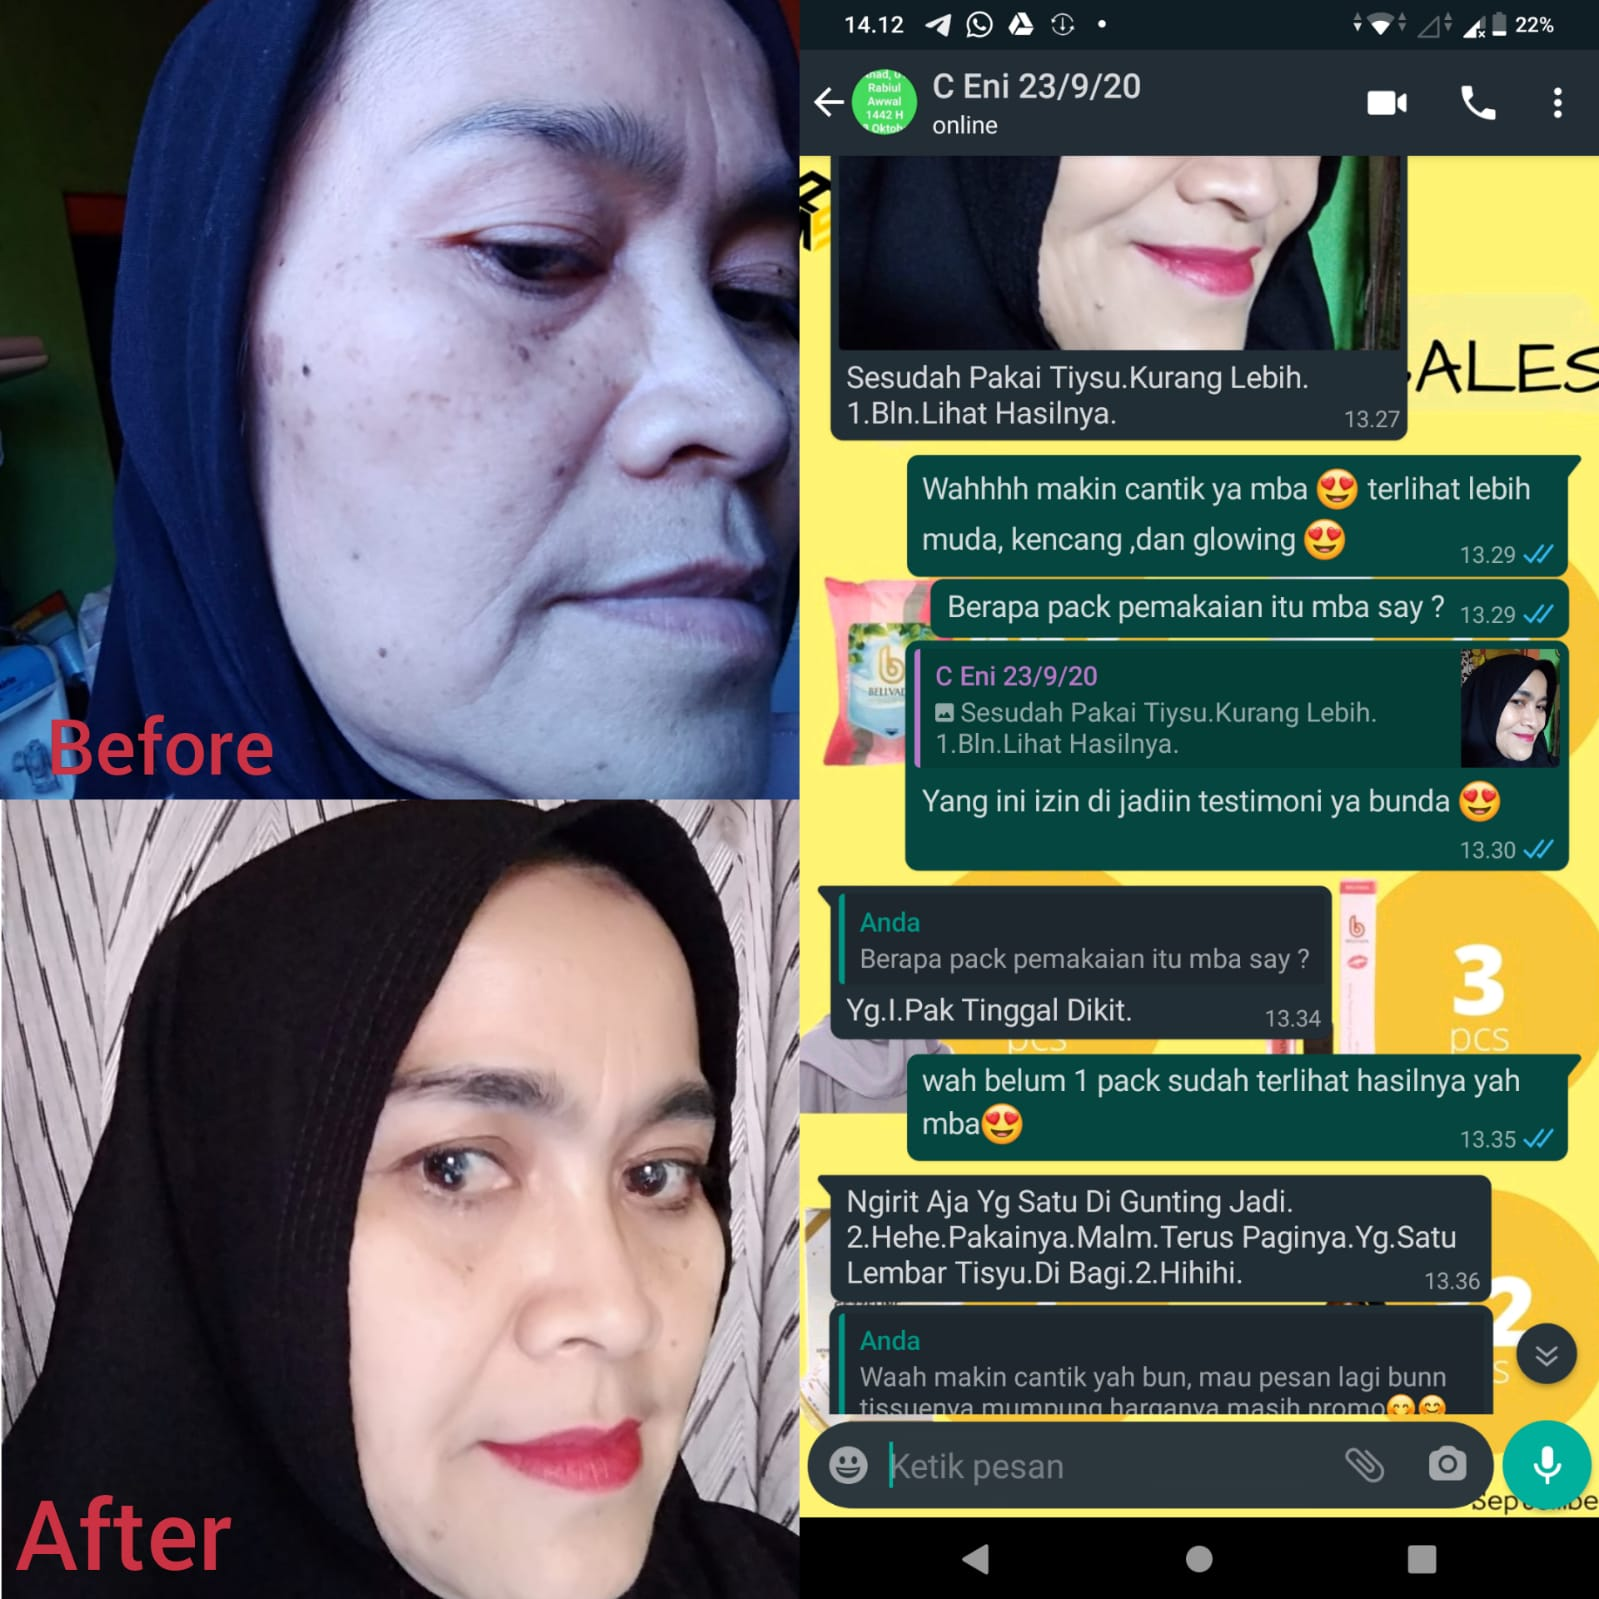 before-after.jpeg